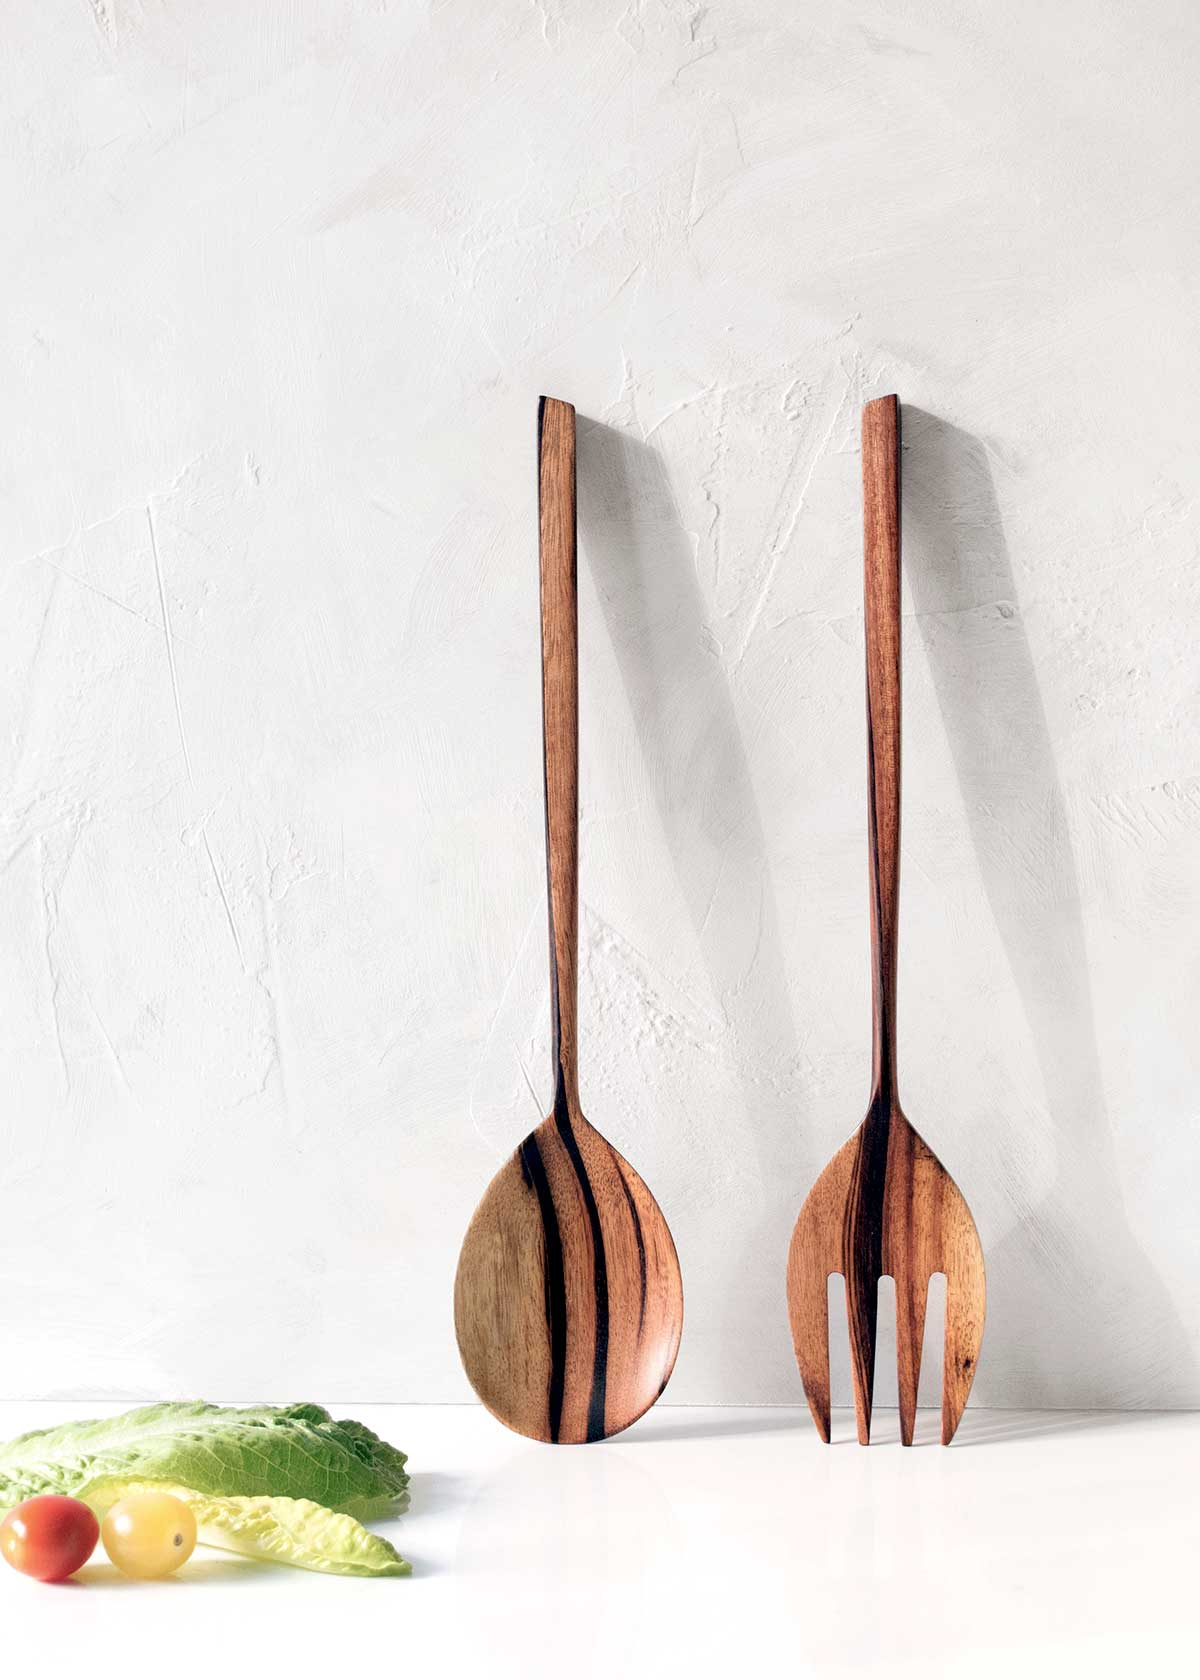 Itza Wood Jobillo Salad Servers, Set of 2